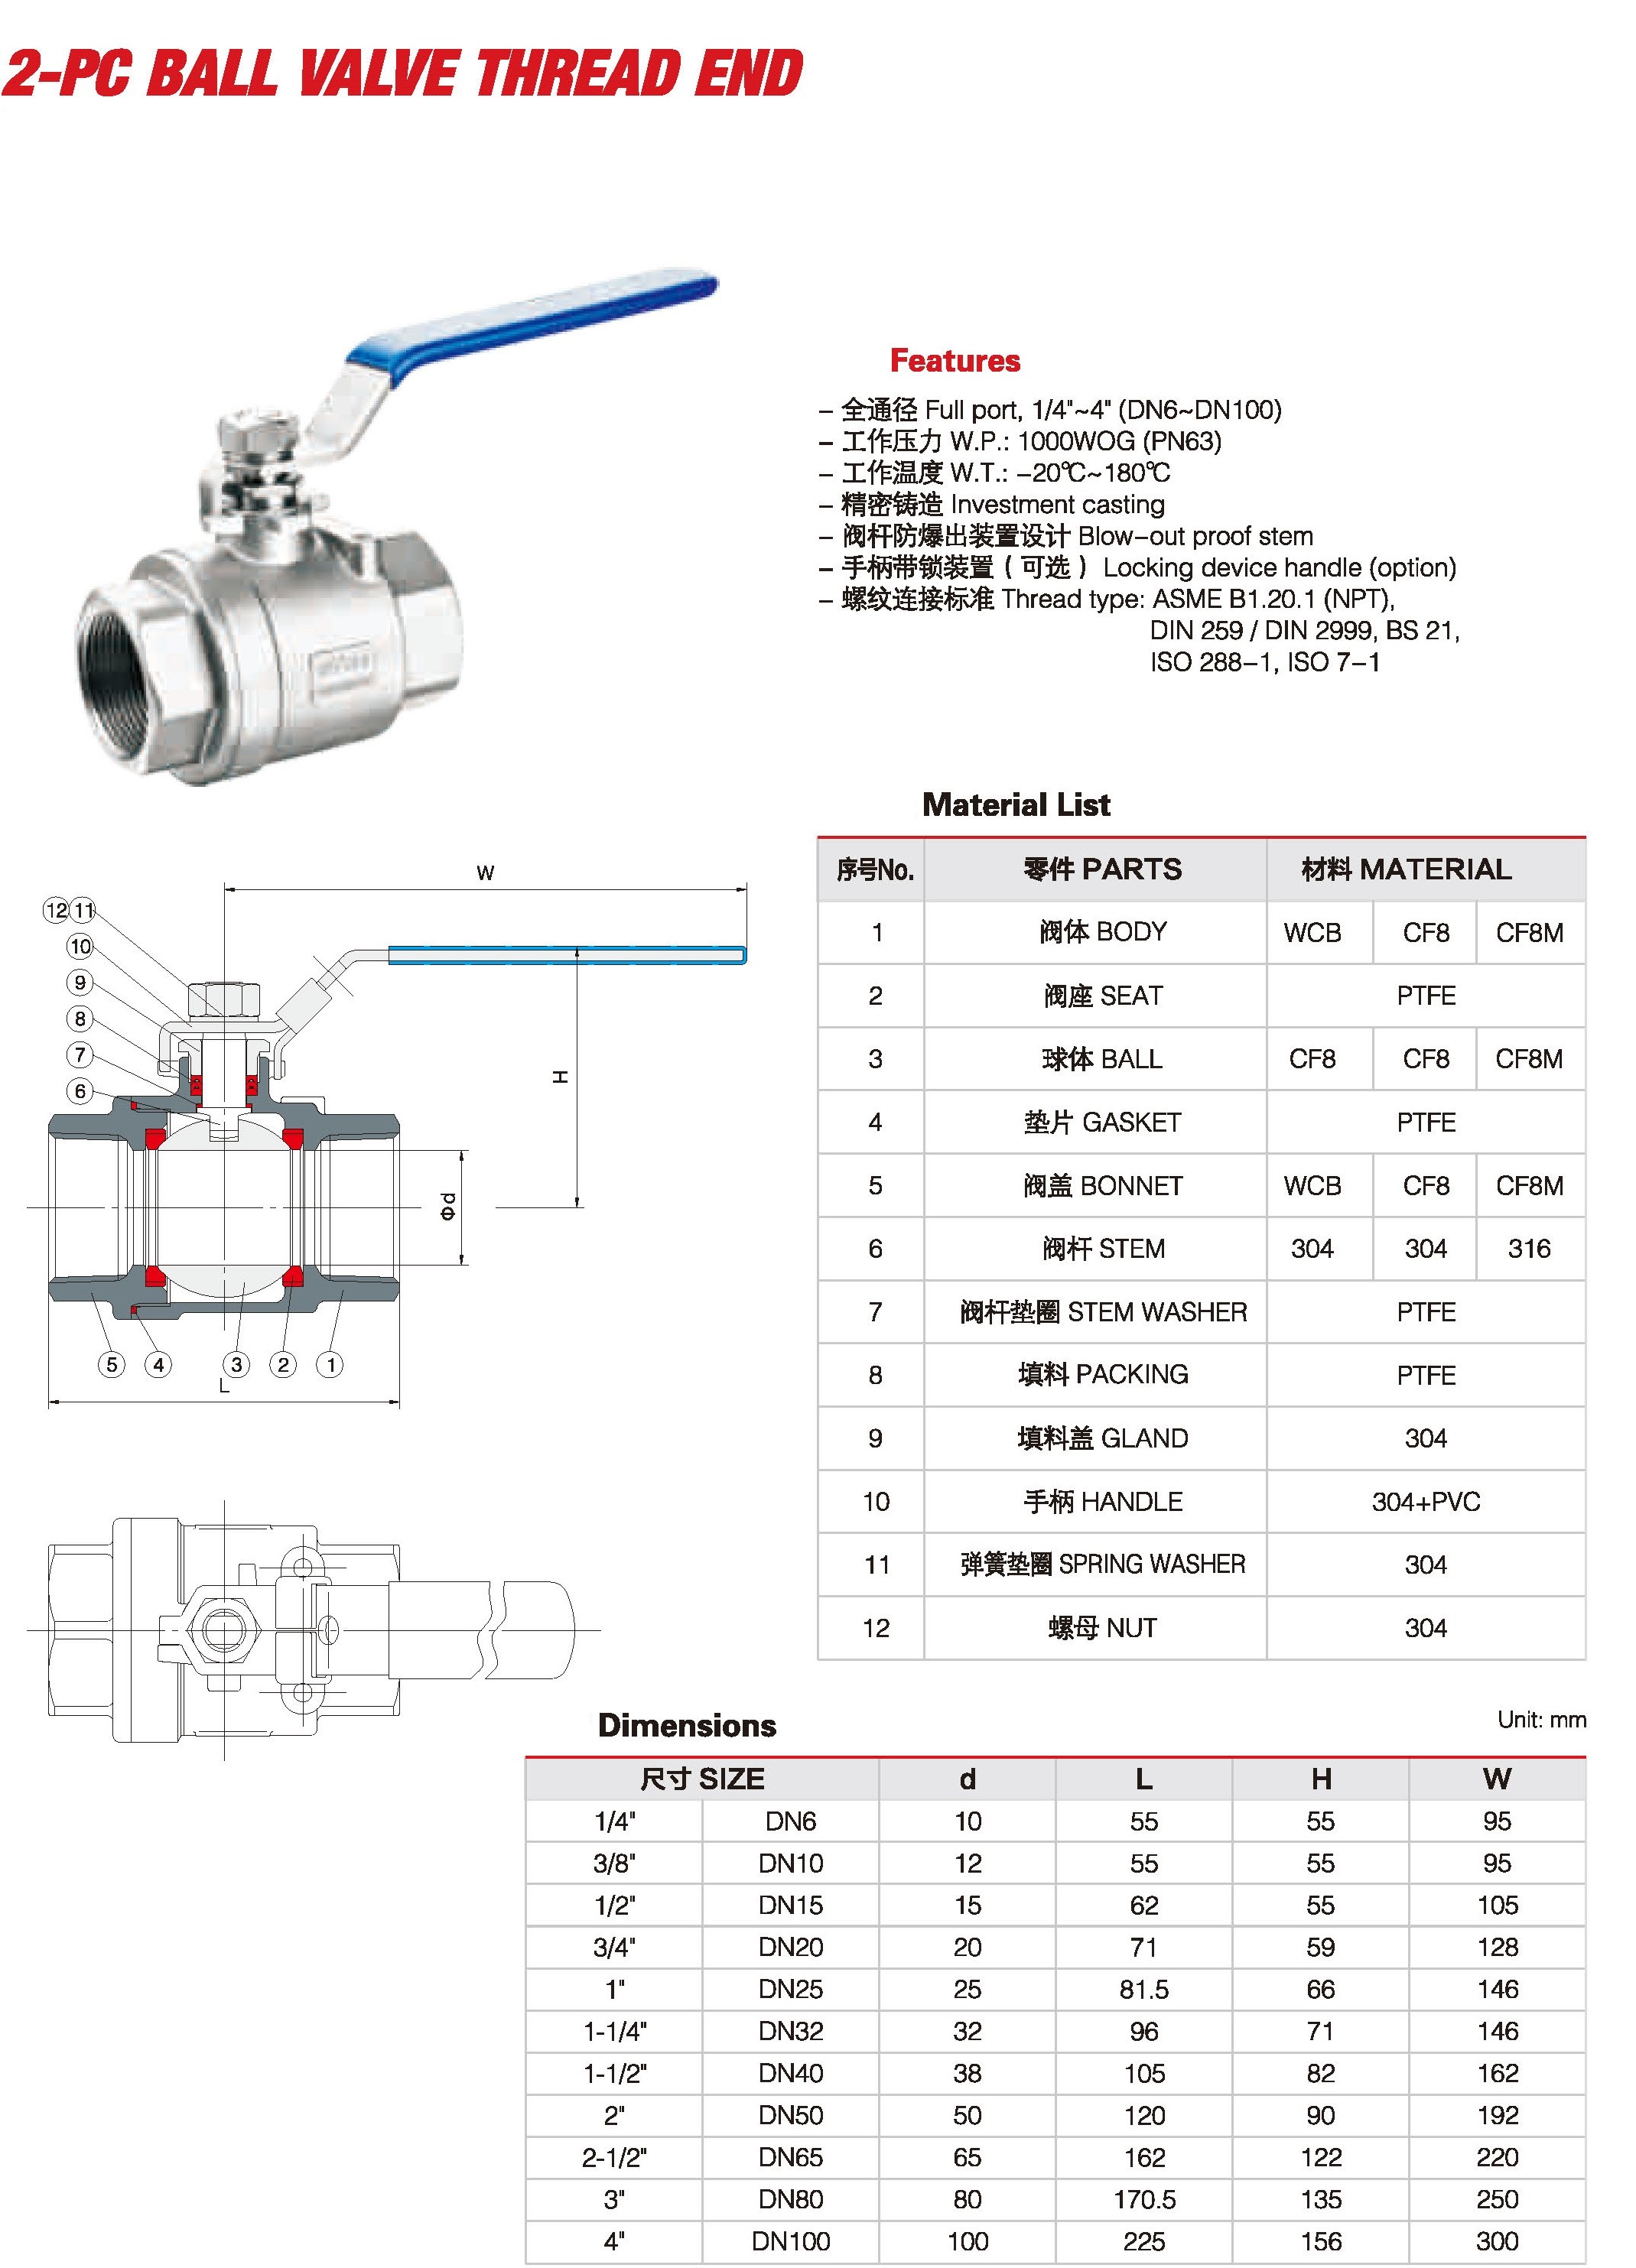 2PC BALL VALVE LEVER OPERATED 1000WOG